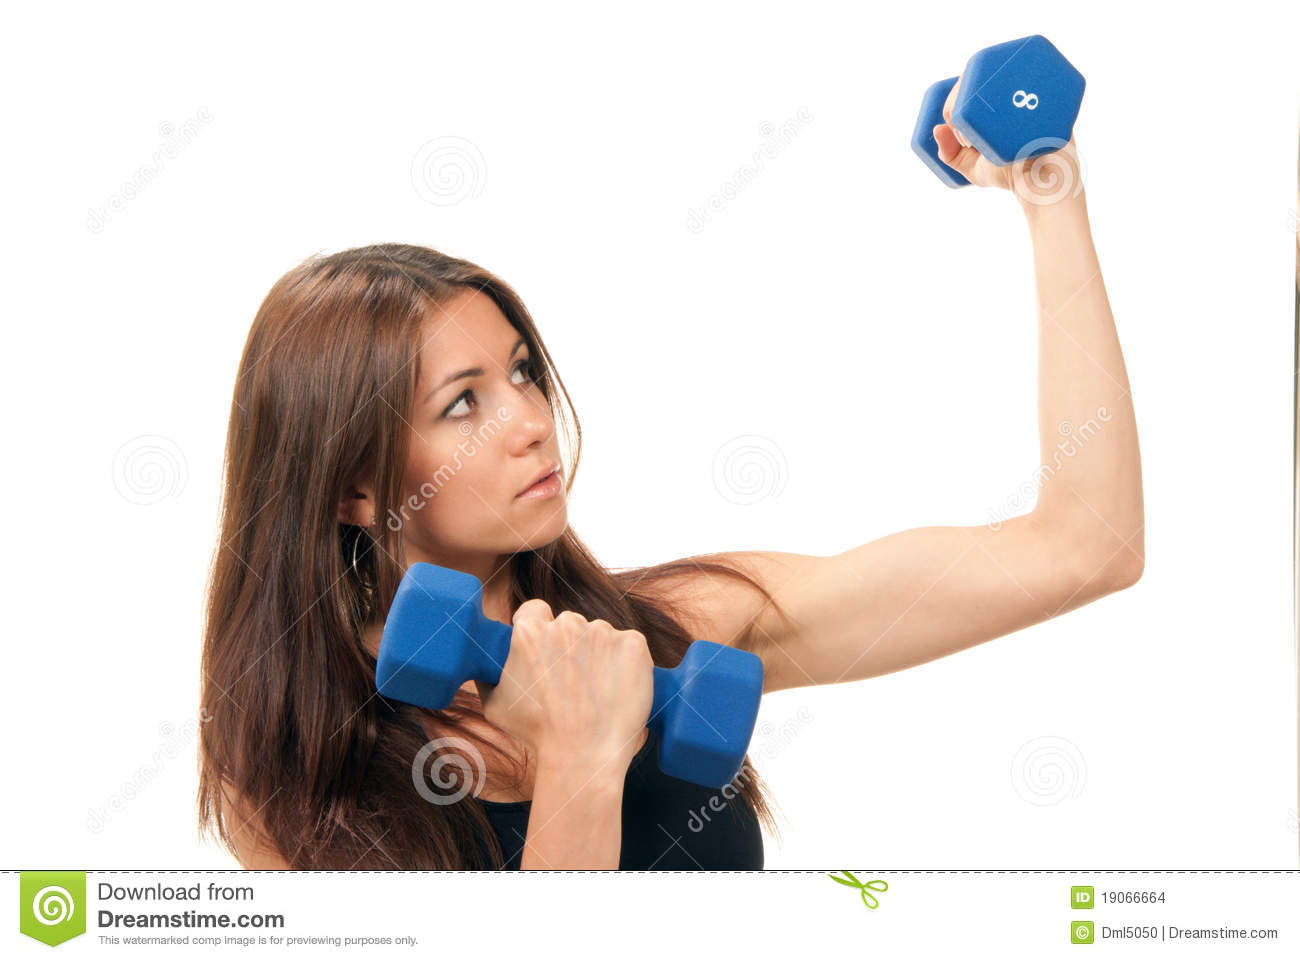 Fitness Woman On Diet Workout Dumbbells Stock Photo - Image